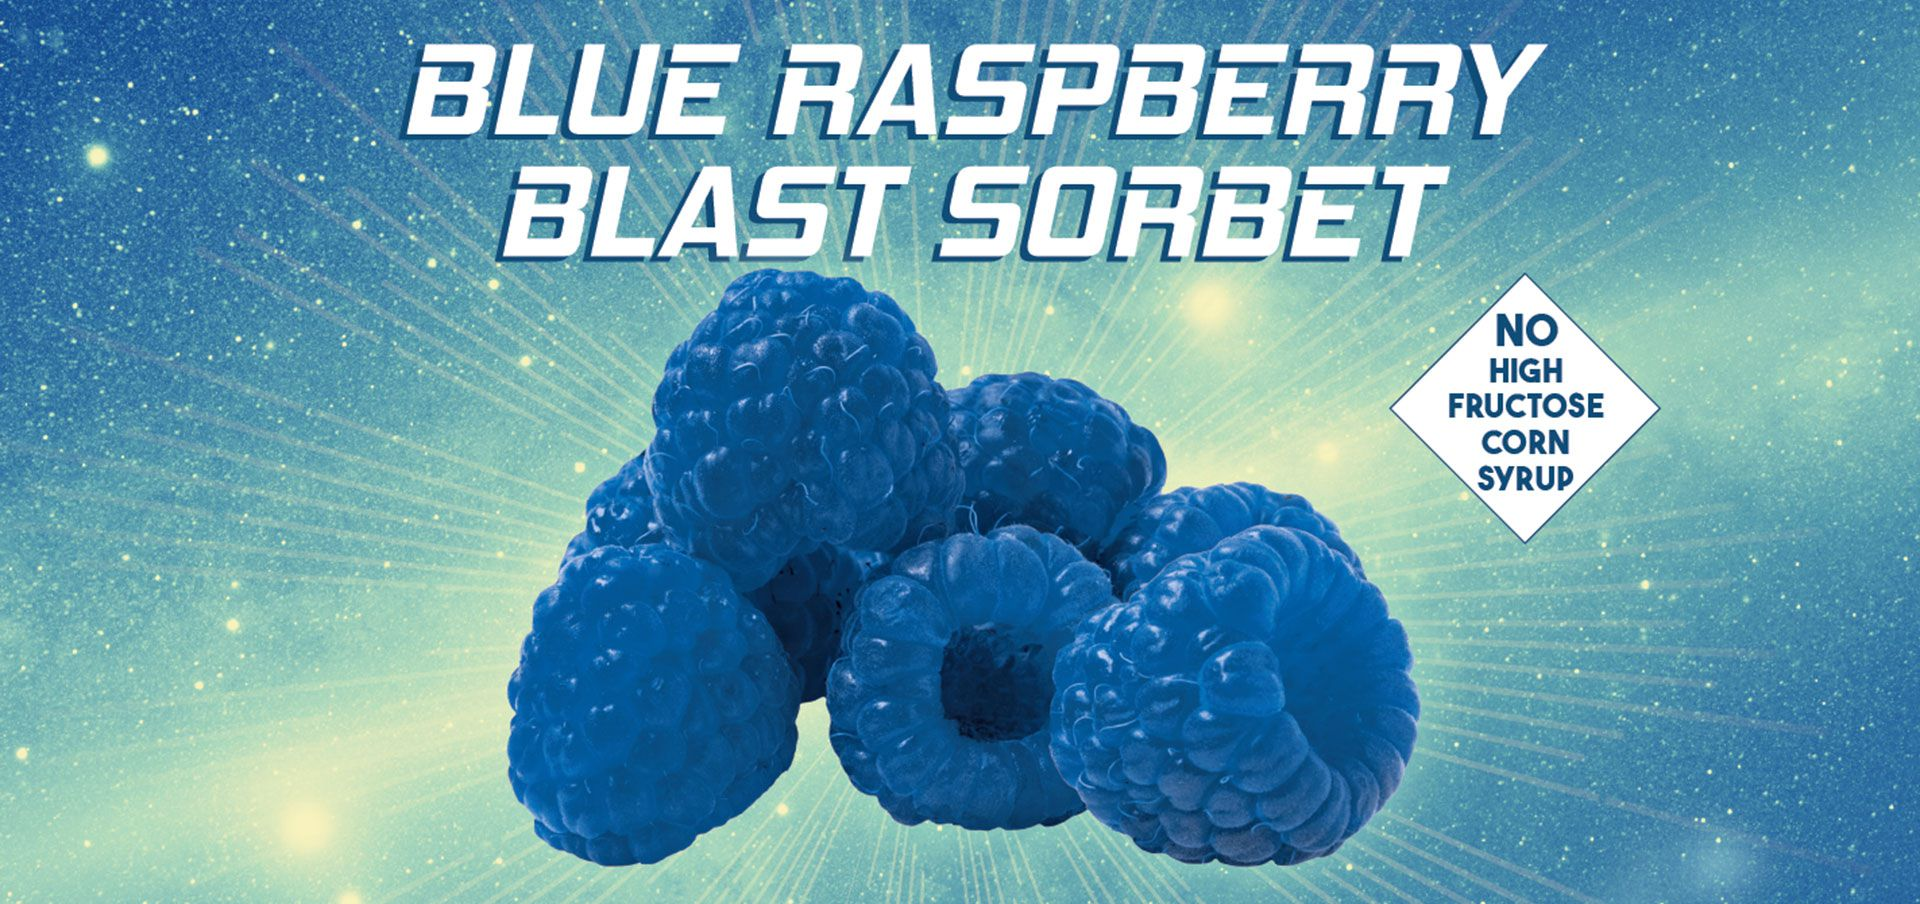 blue raspberry blast sorbet label image